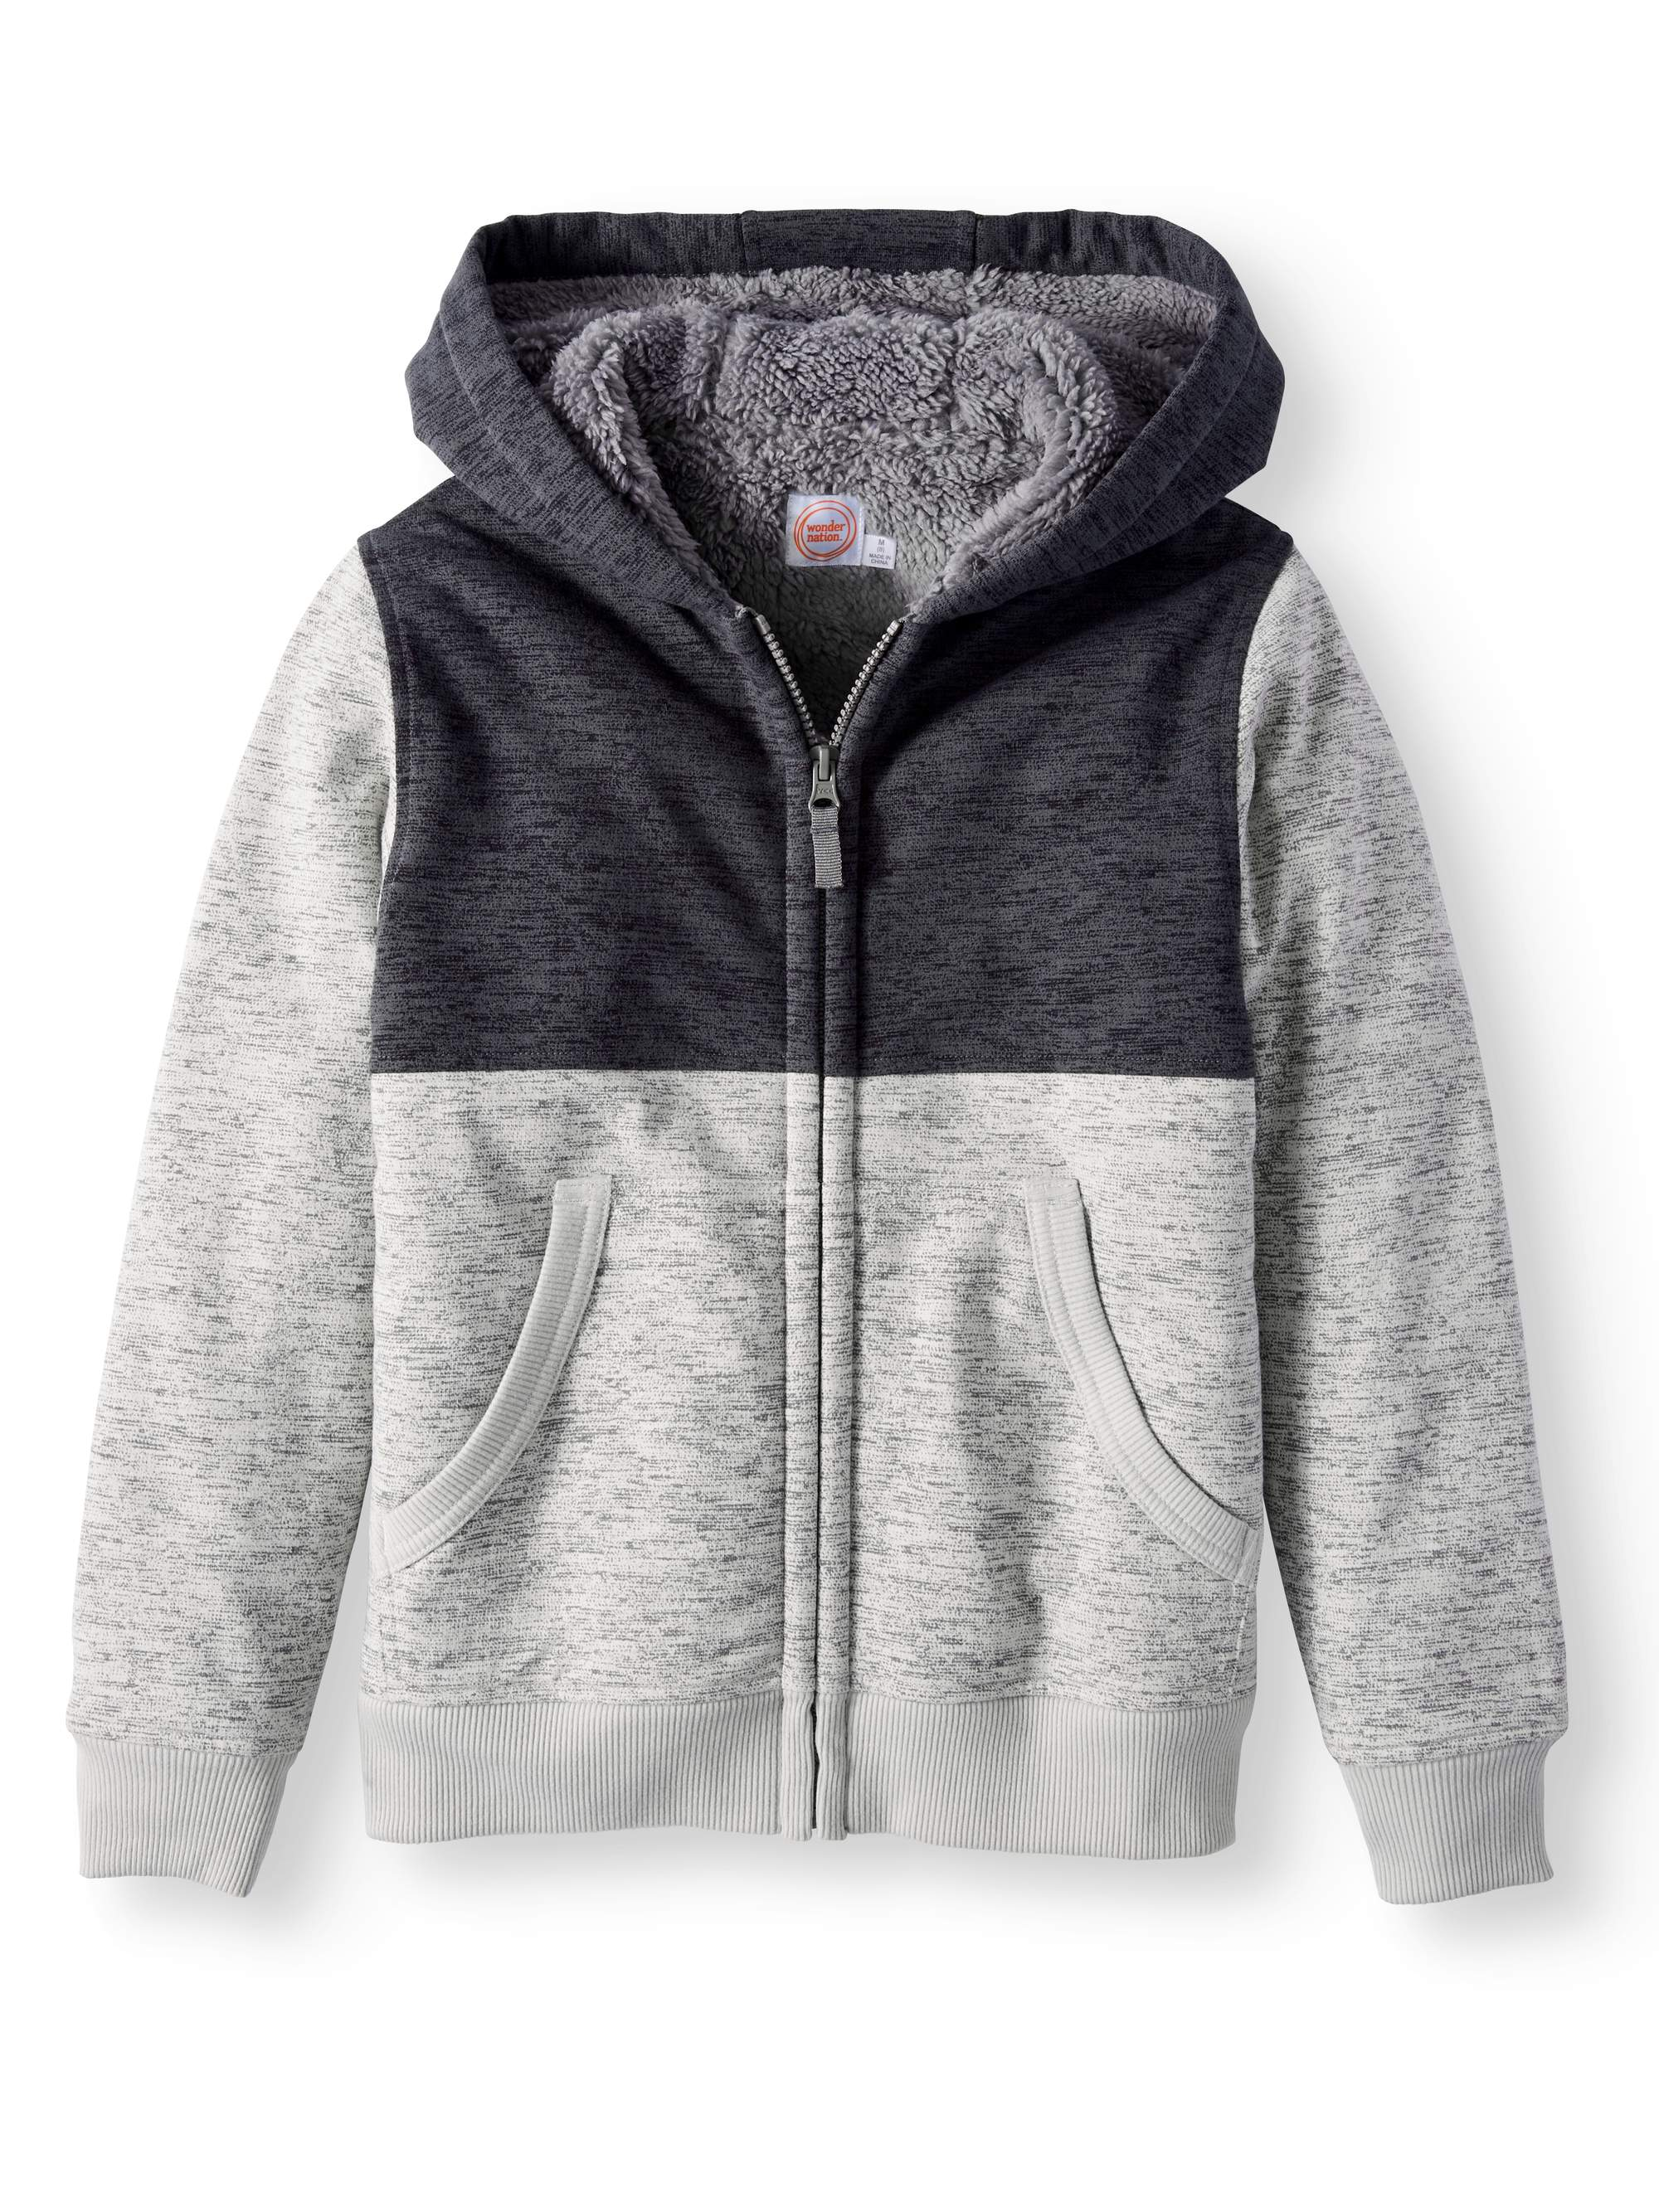 Wonder Nation Boys Sherpa Lined Hoodie Walmart Inventory Checker